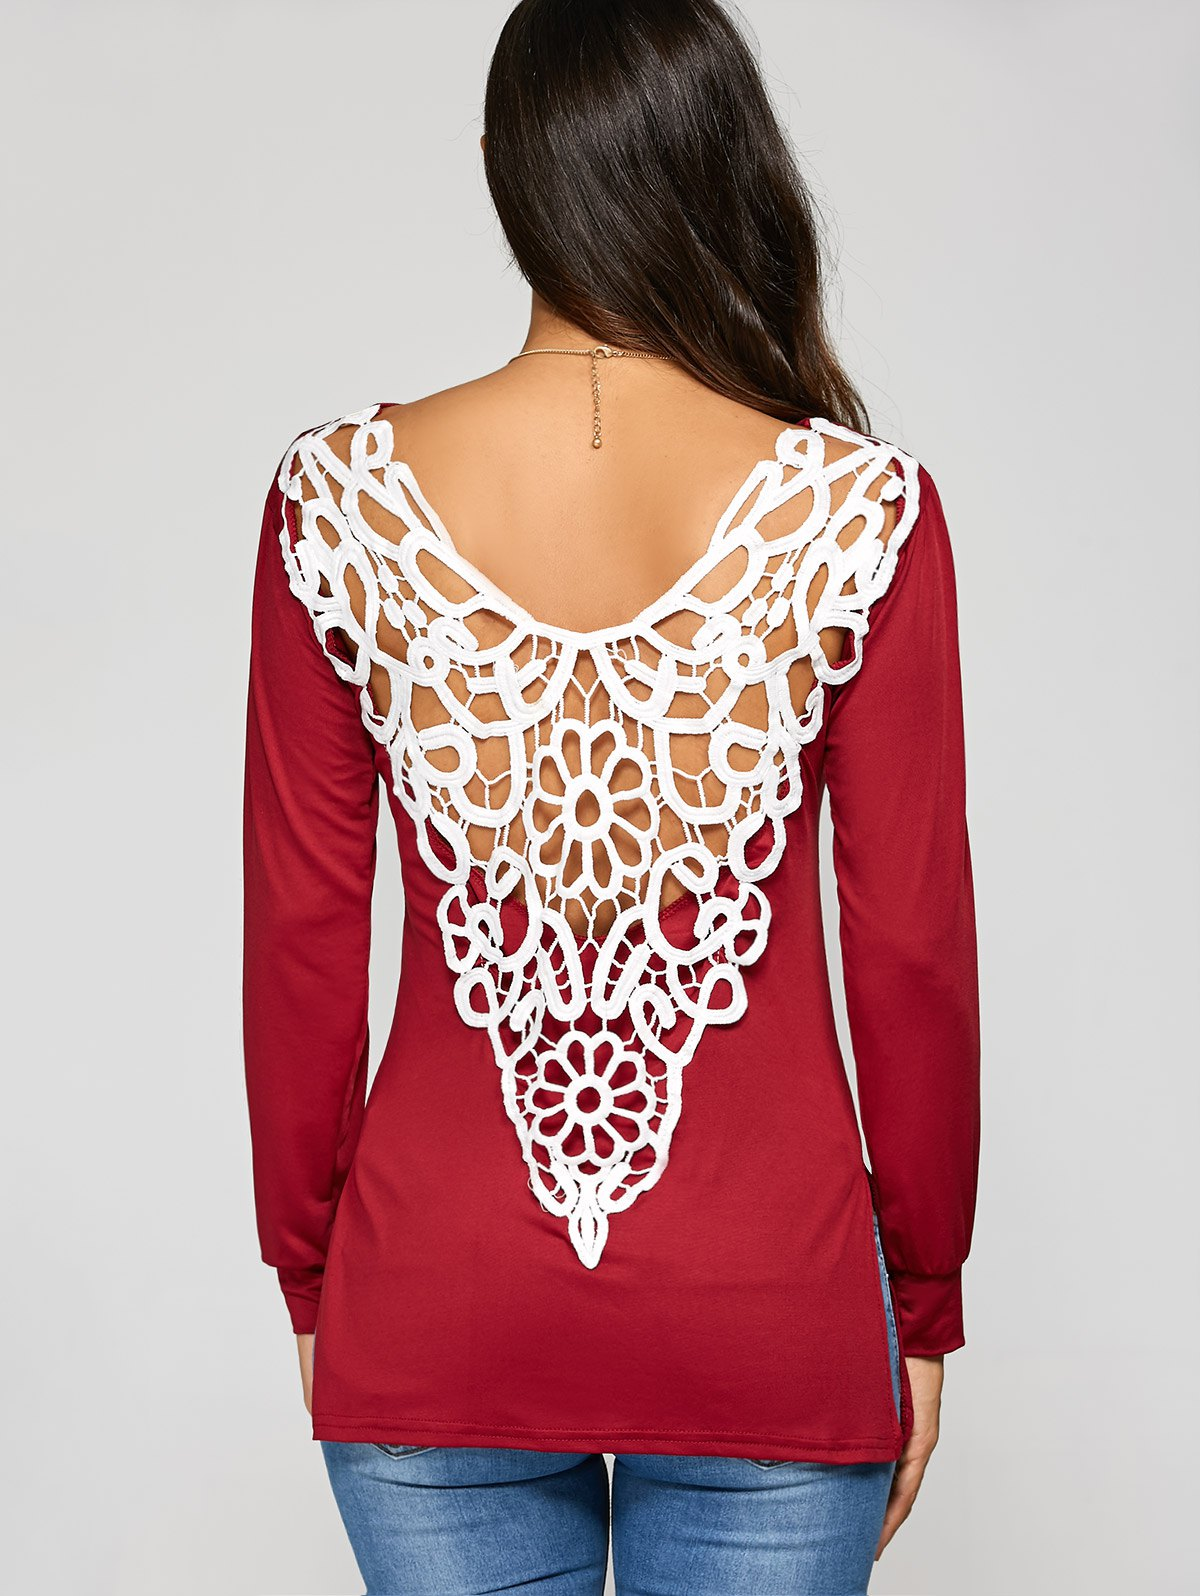 Crochet Lace Insert Hollow Out T-ShirtWomen<br><br><br>Size: 2XL<br>Color: DEEP RED